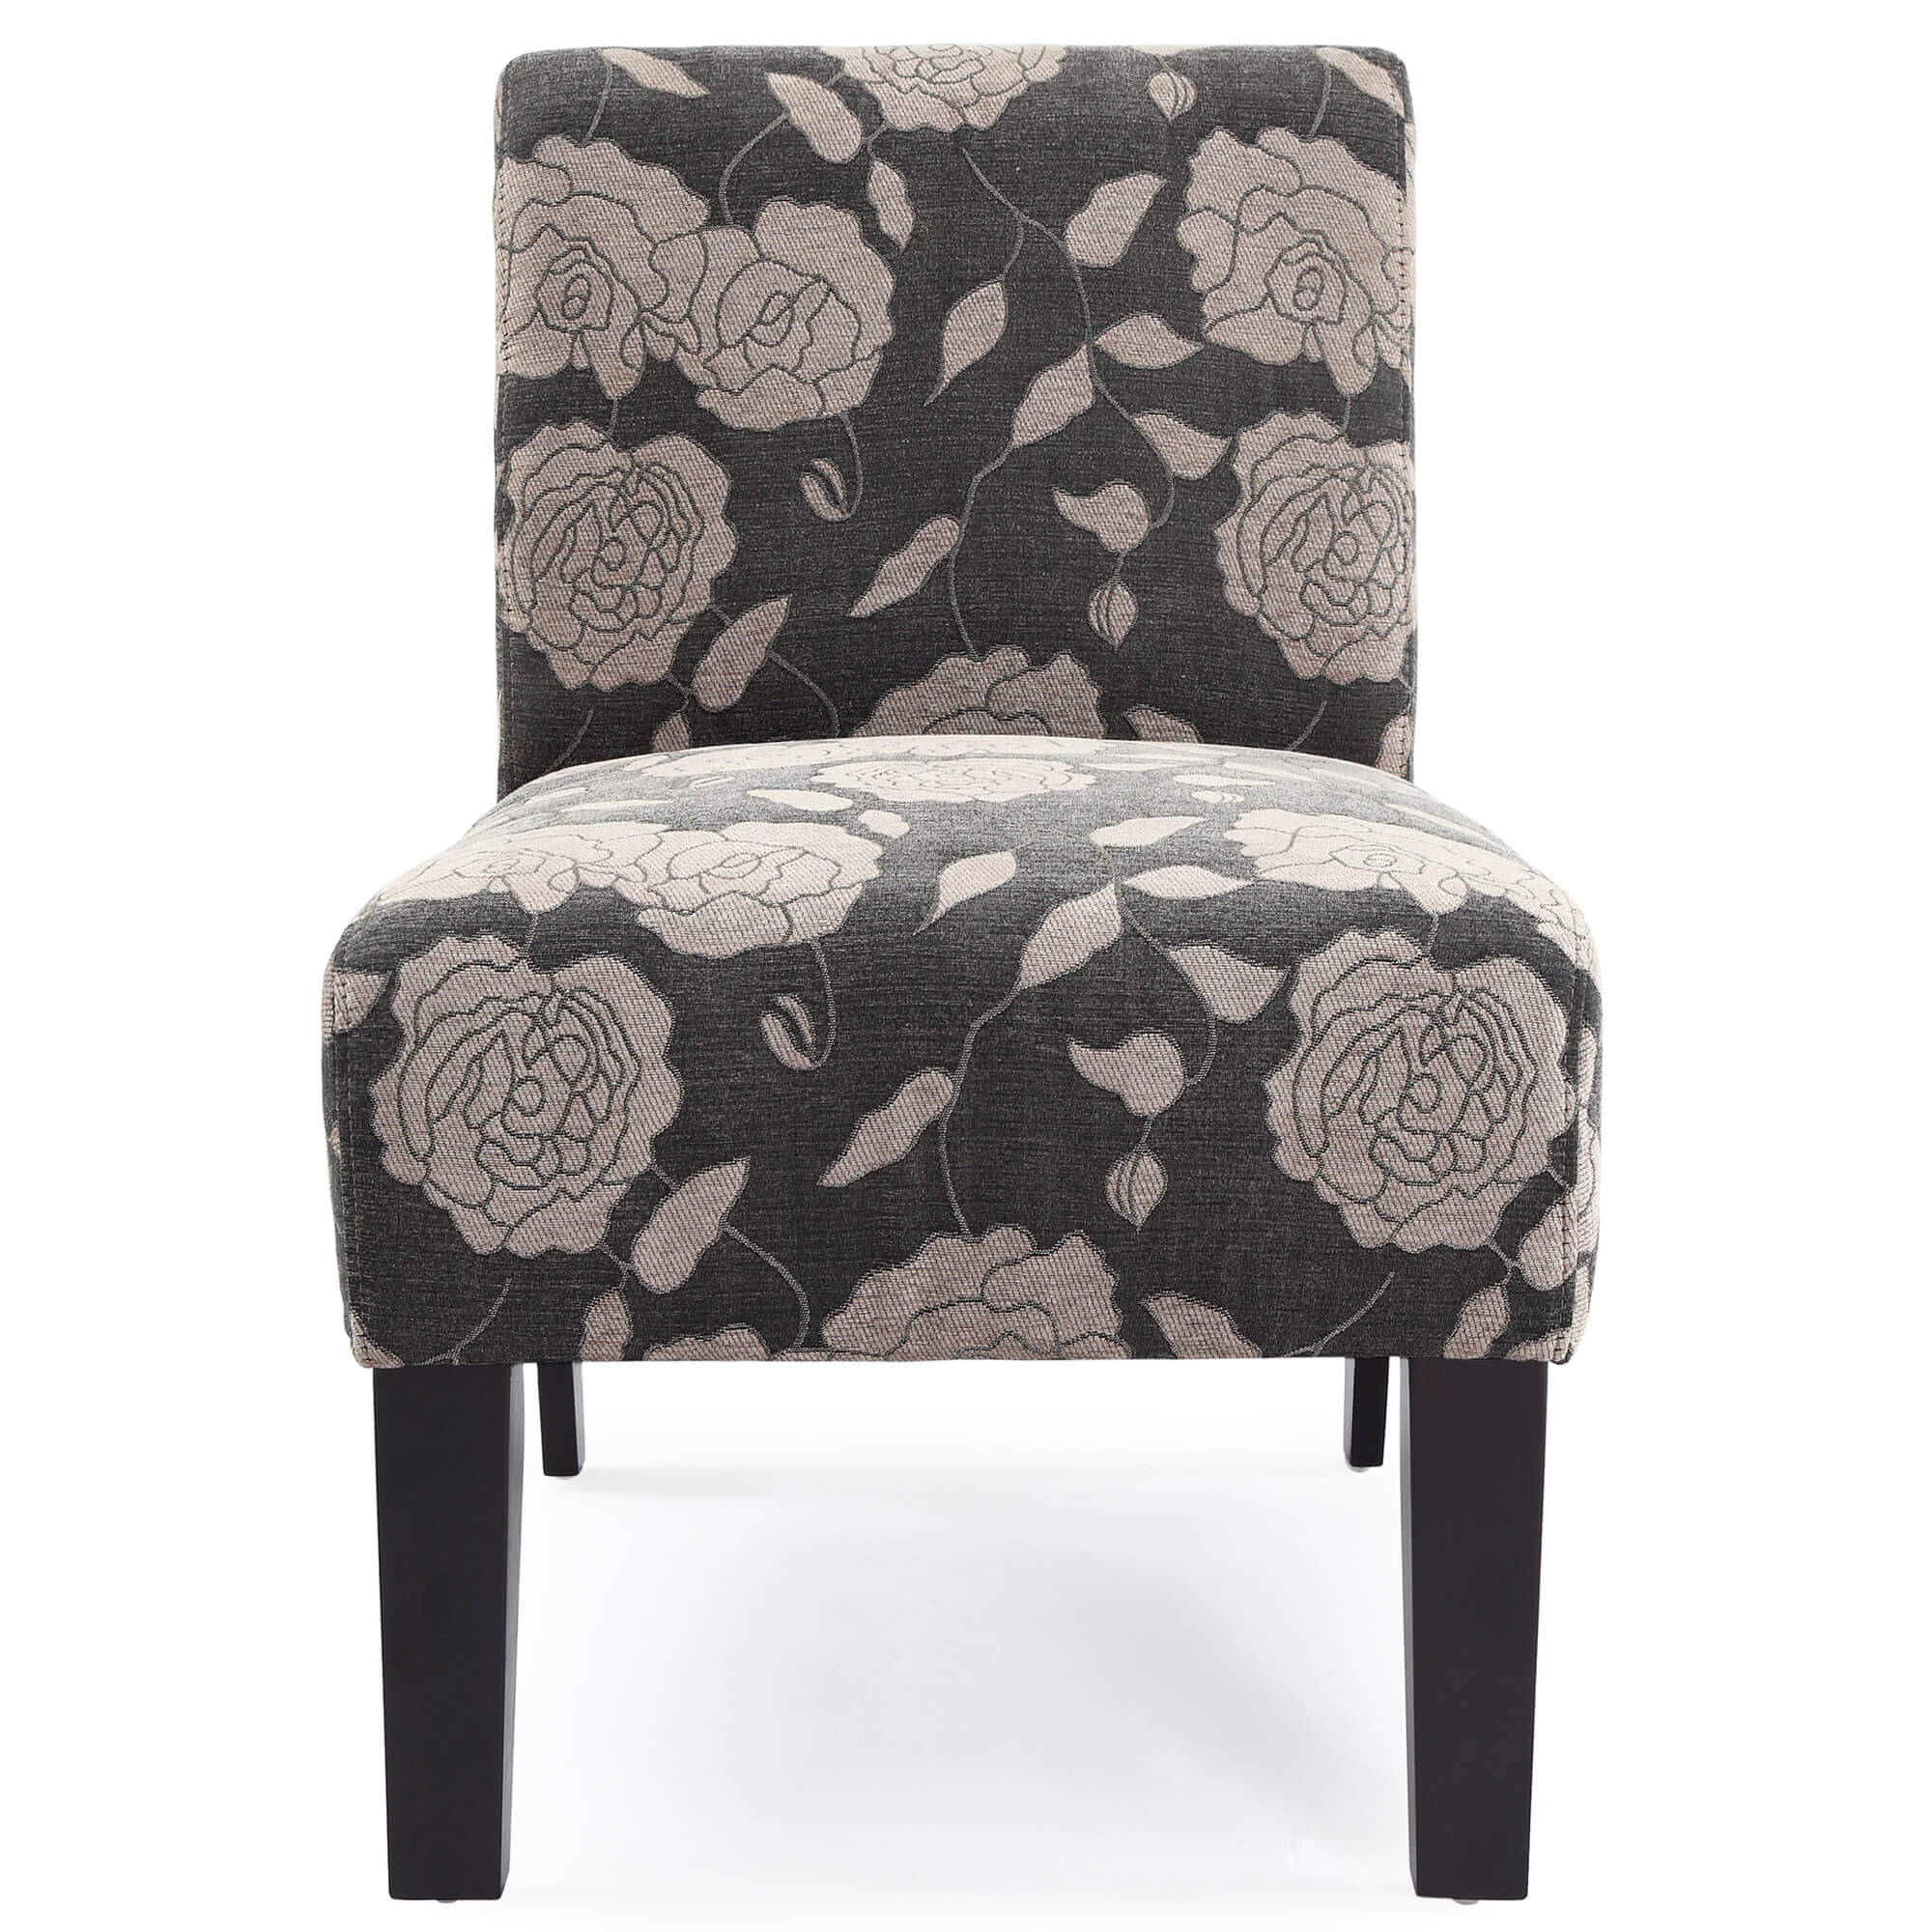 Beautiful Accent Chairs 10 Attractive Accent Chairs Under 100 2019